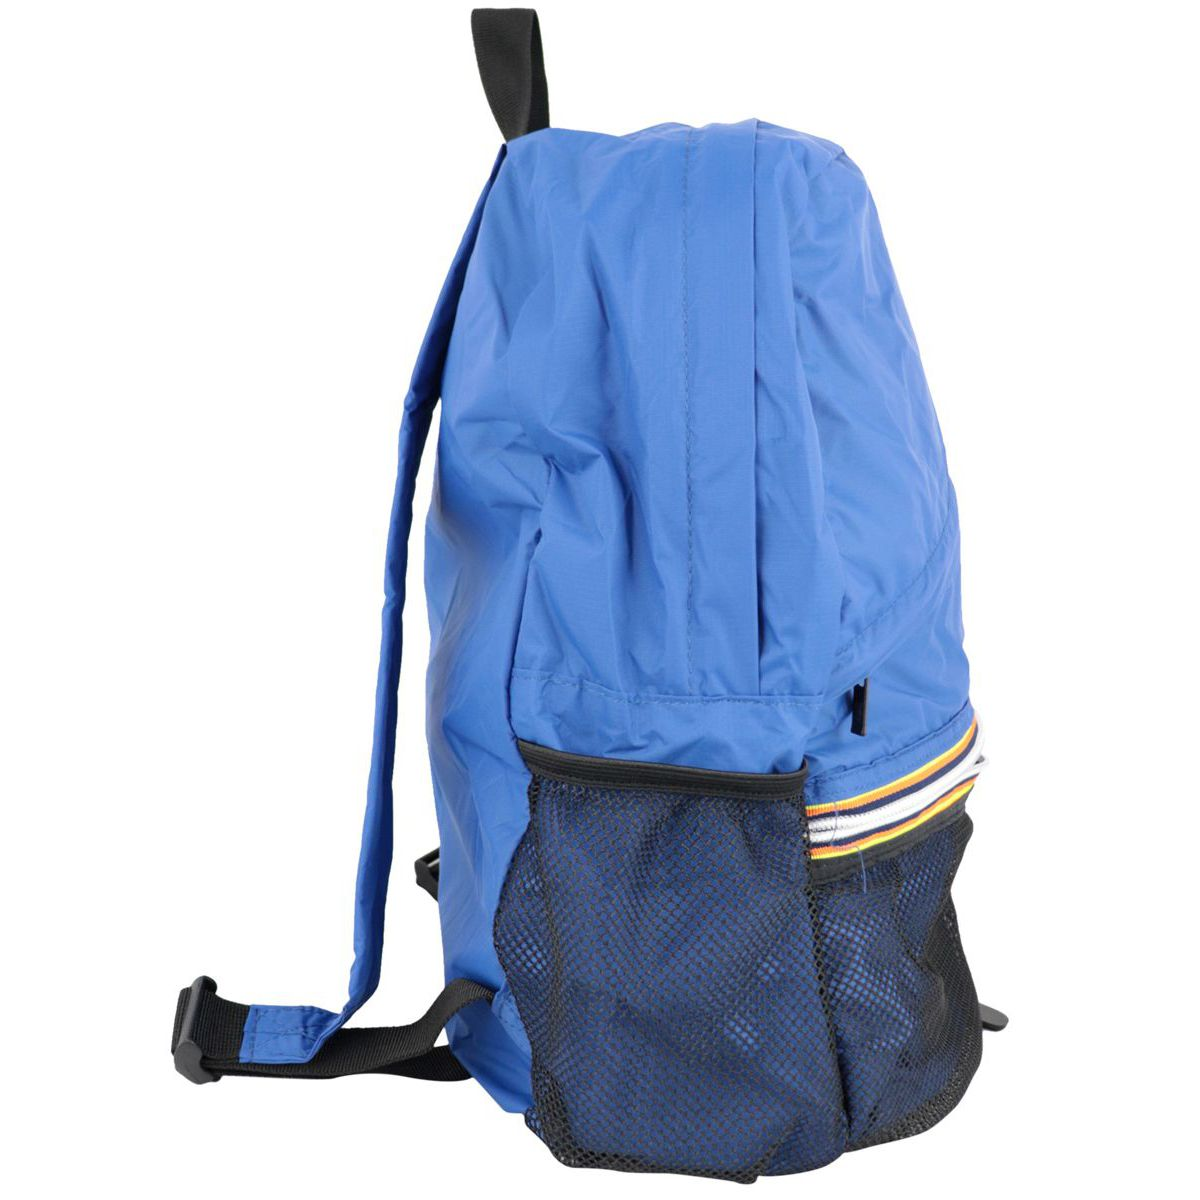 Le Vrai 3.0 Francois backpack Light blue K-Way